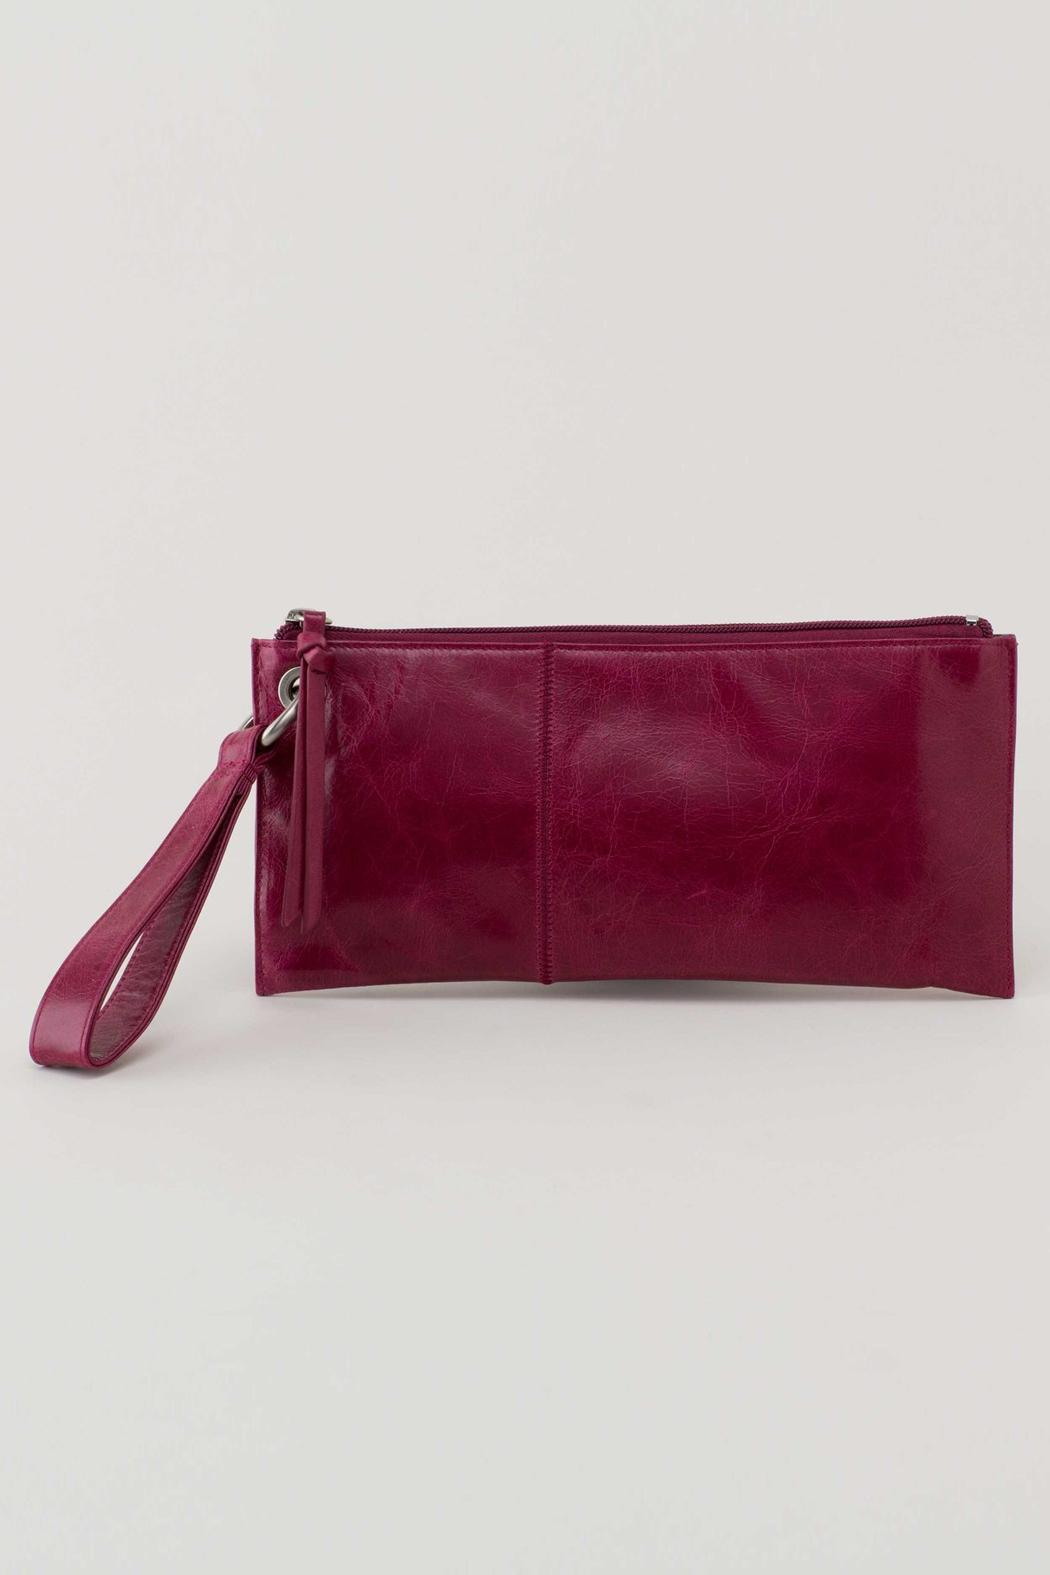 VIDA Leather Statement Clutch - Boho Spirit by VIDA